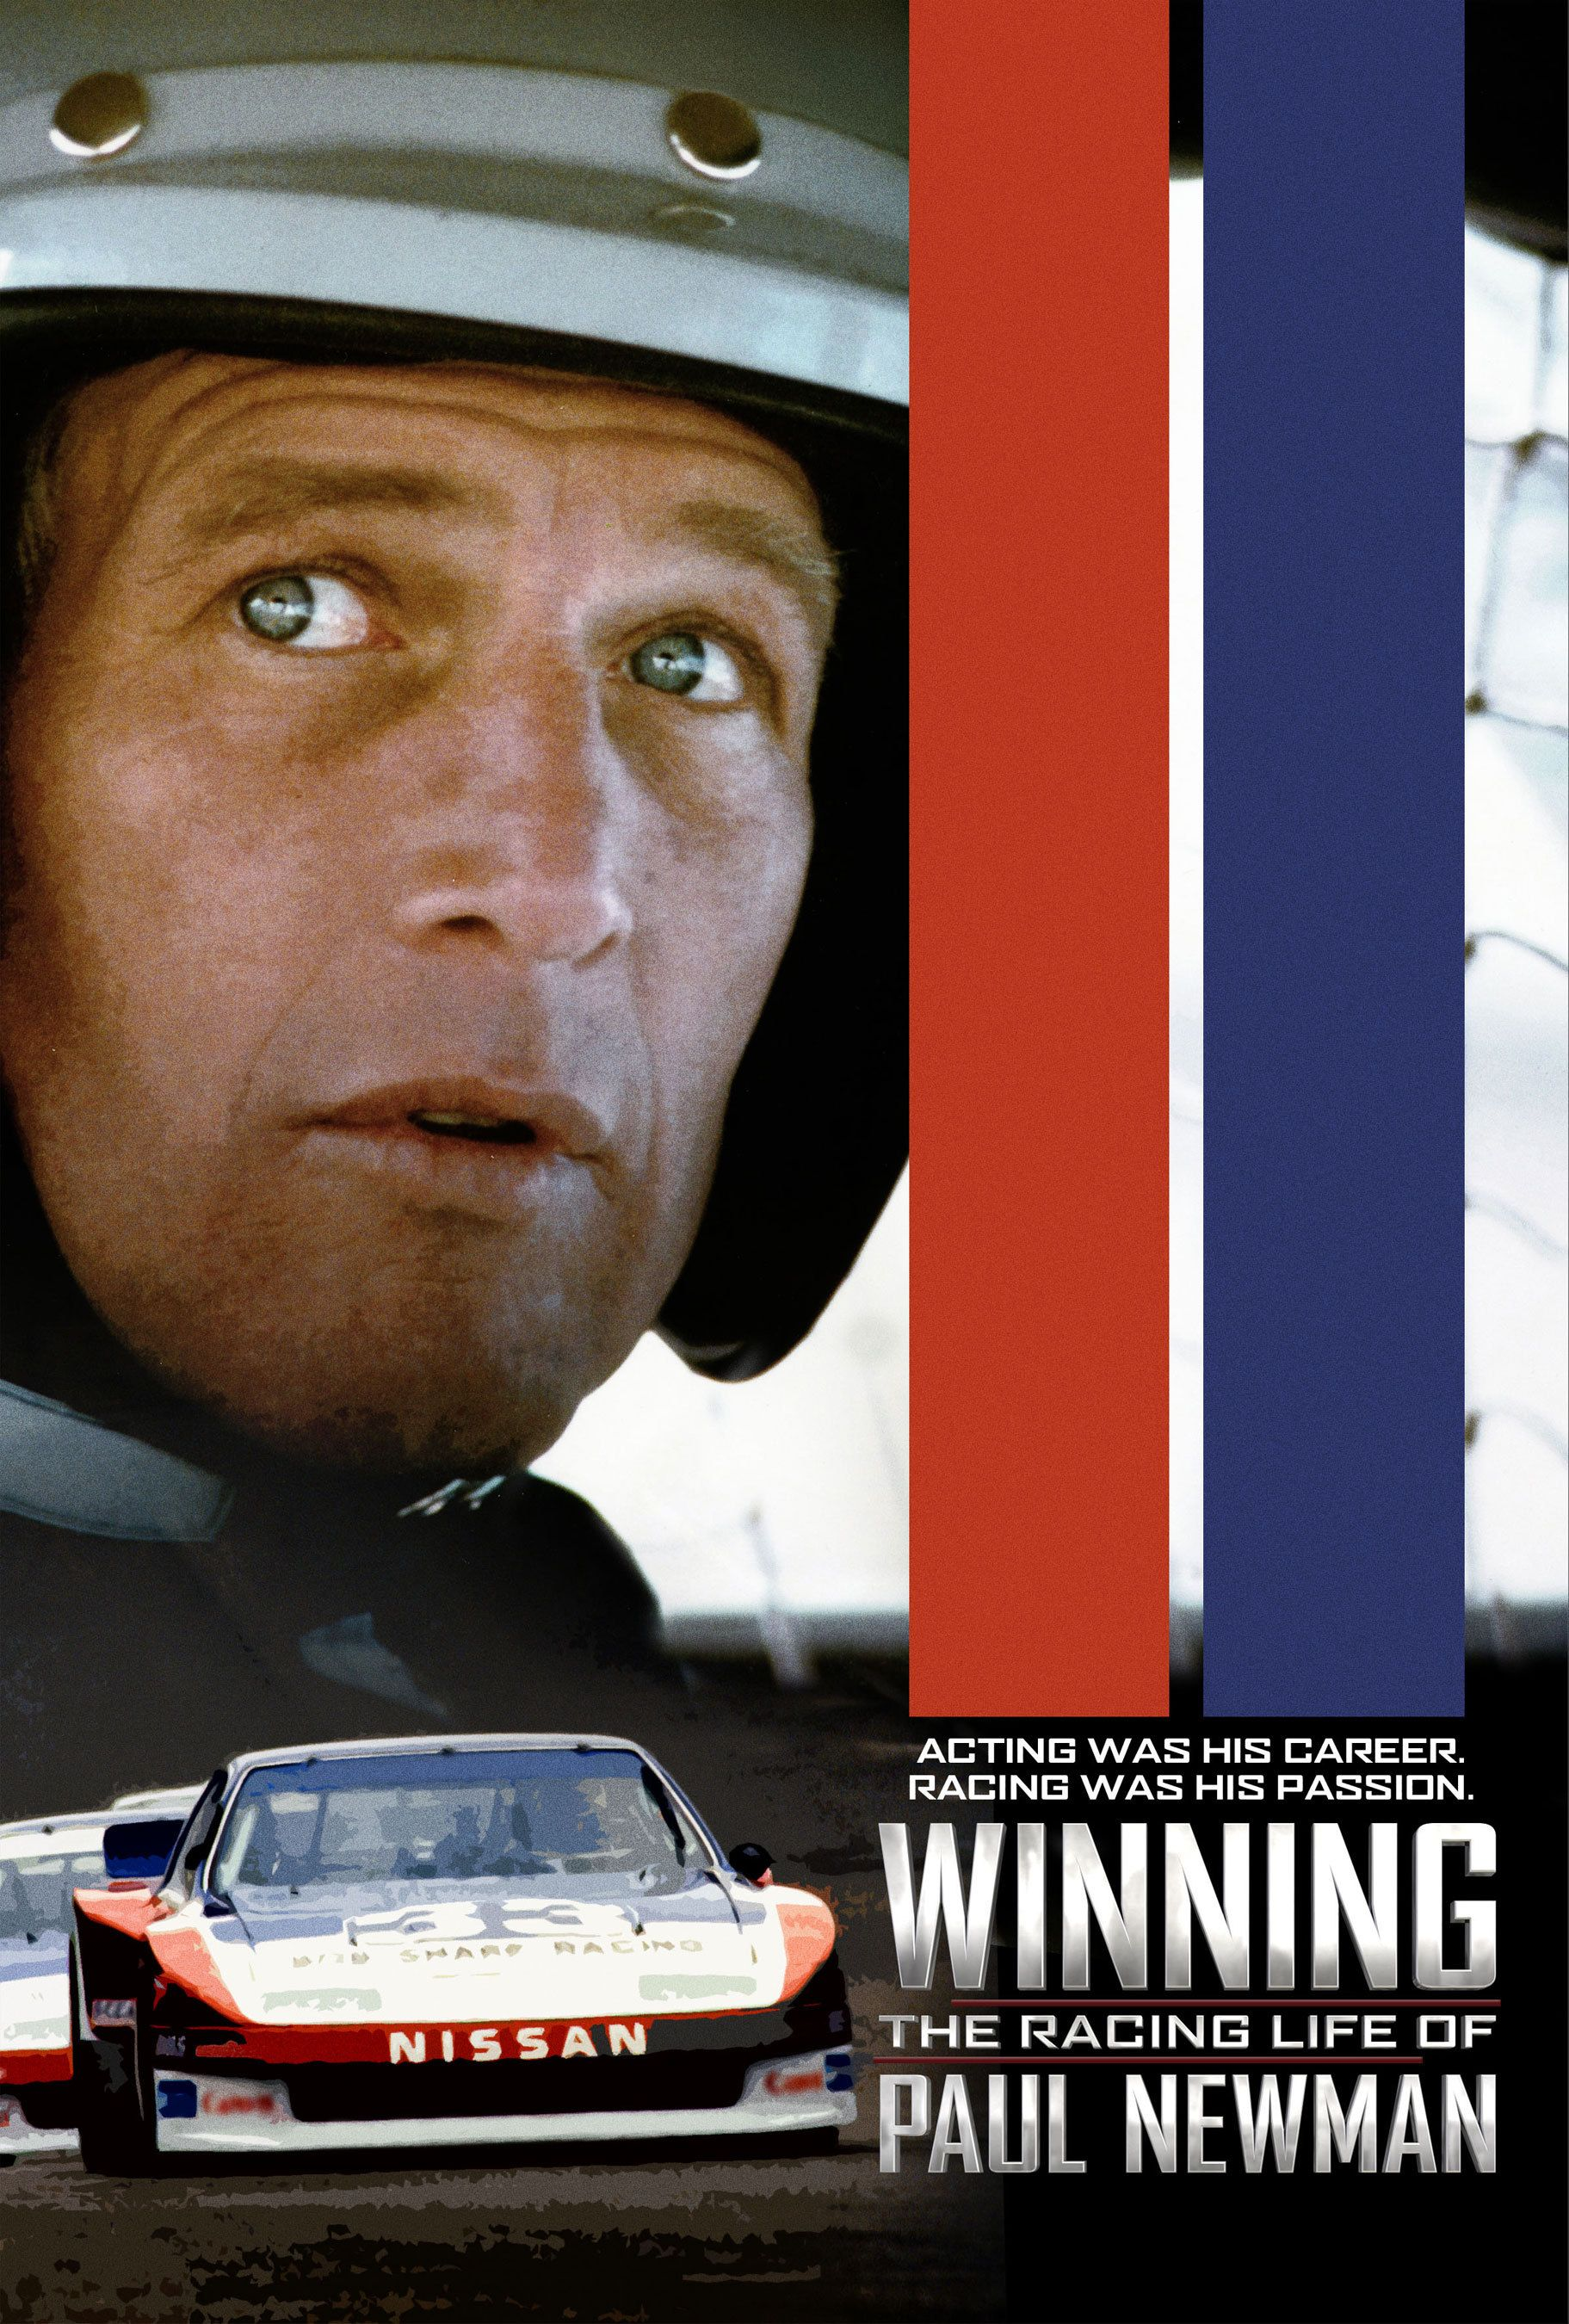 Winning, The racing Life of Paul Newman - Nissan Poster